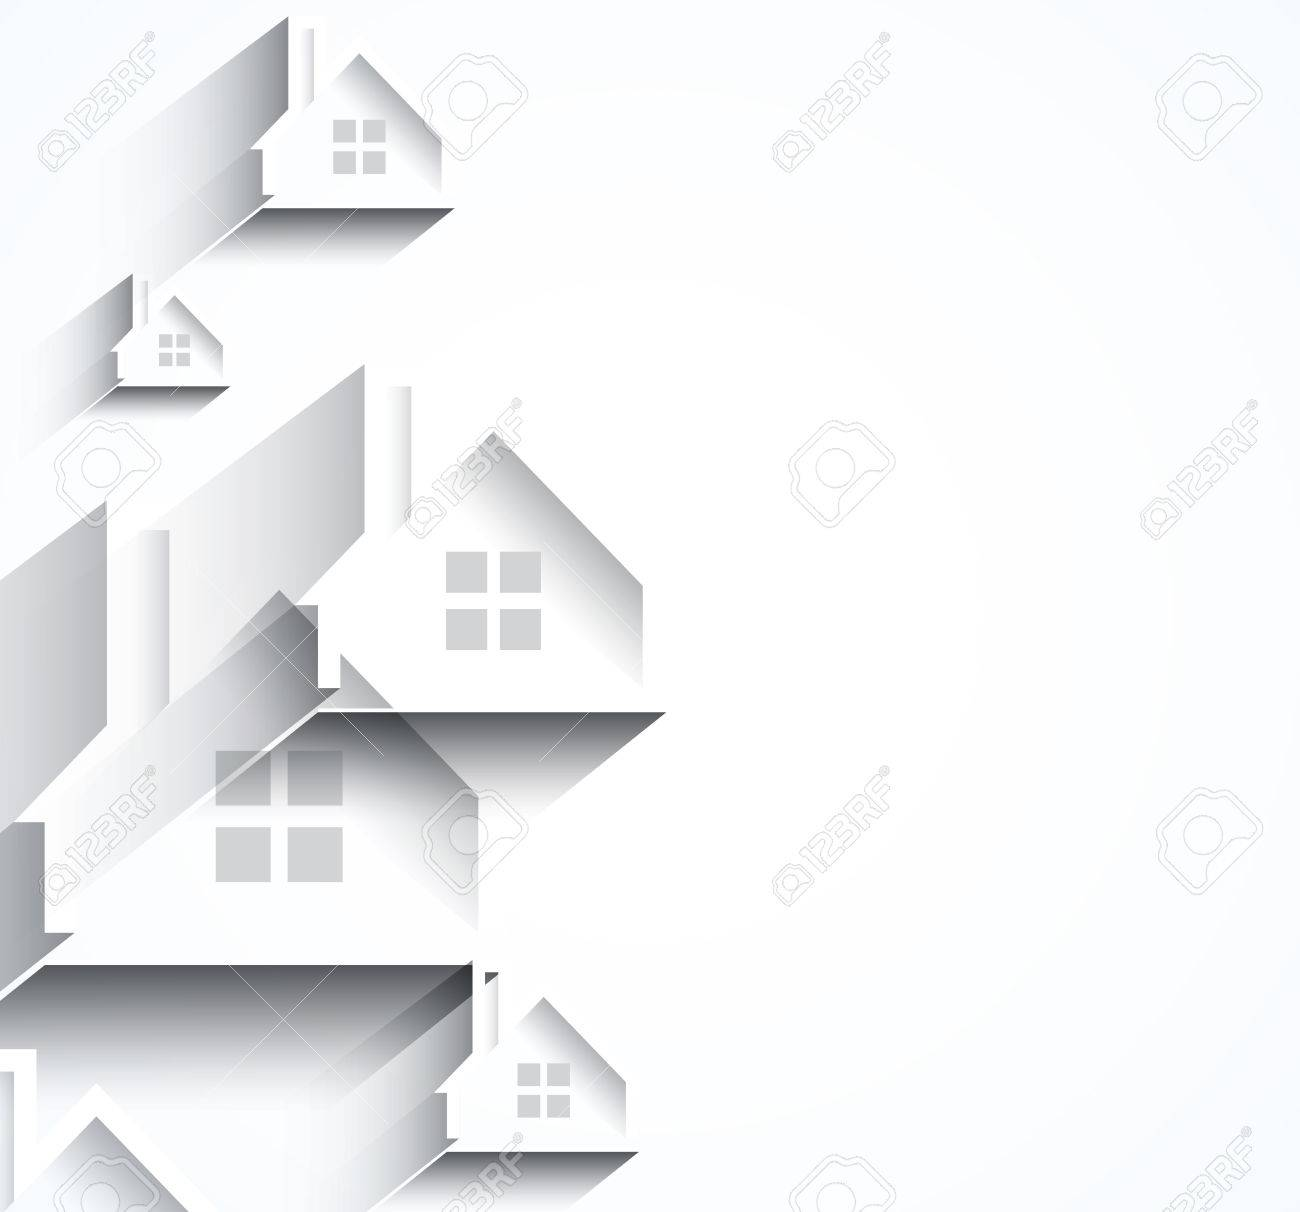 Building and real estate city illustration  Abstract background